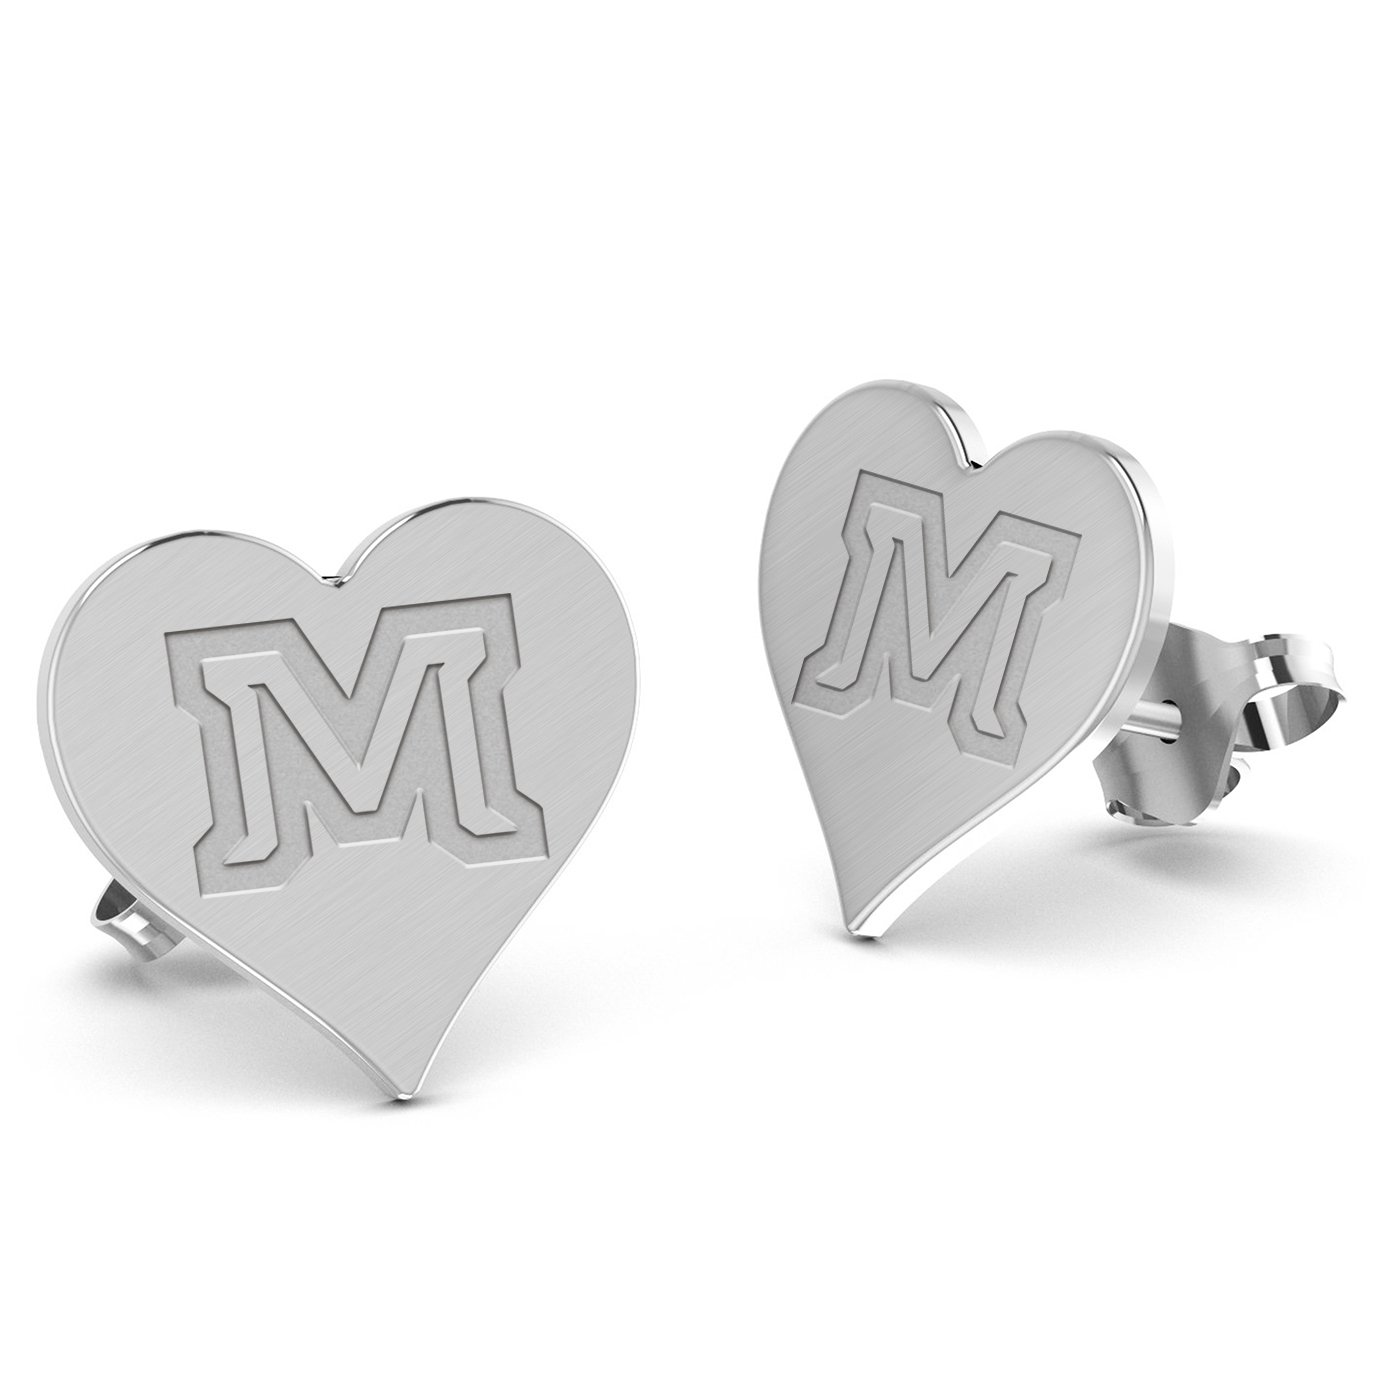 Montana State University Bobcats Heart Stud Earring See Image on Model for Size Reference